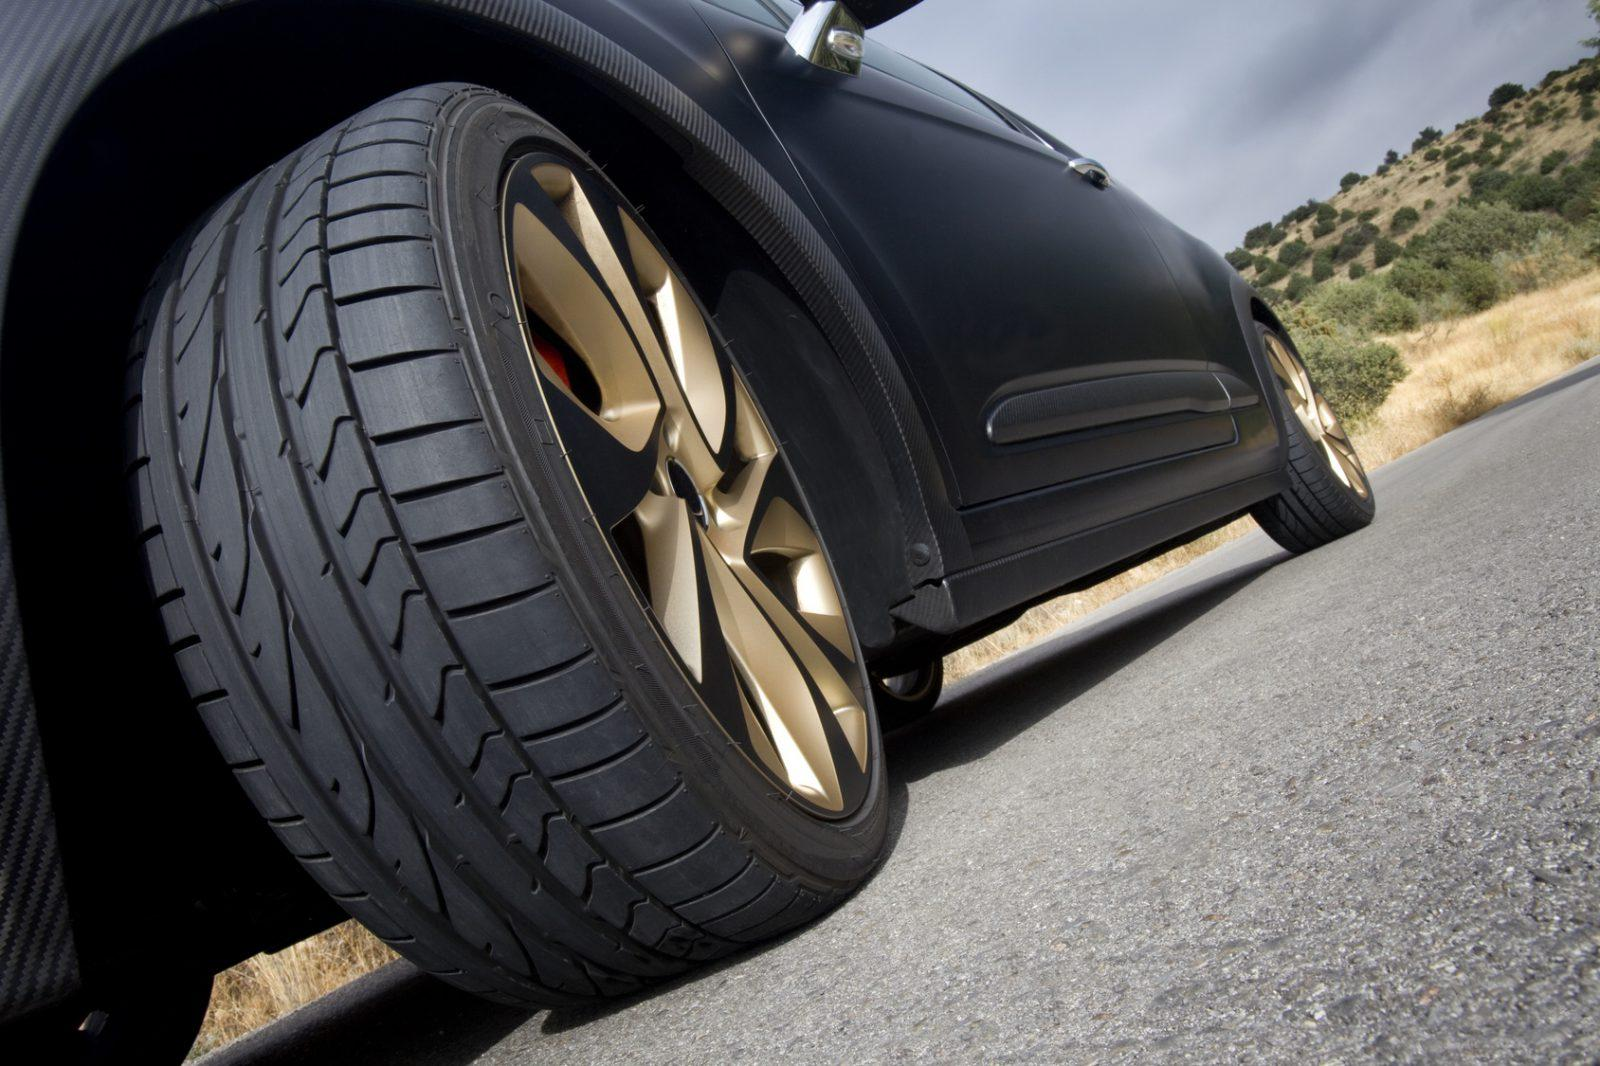 Amazing Guide For Driving On A Flat Tire In Short Distance